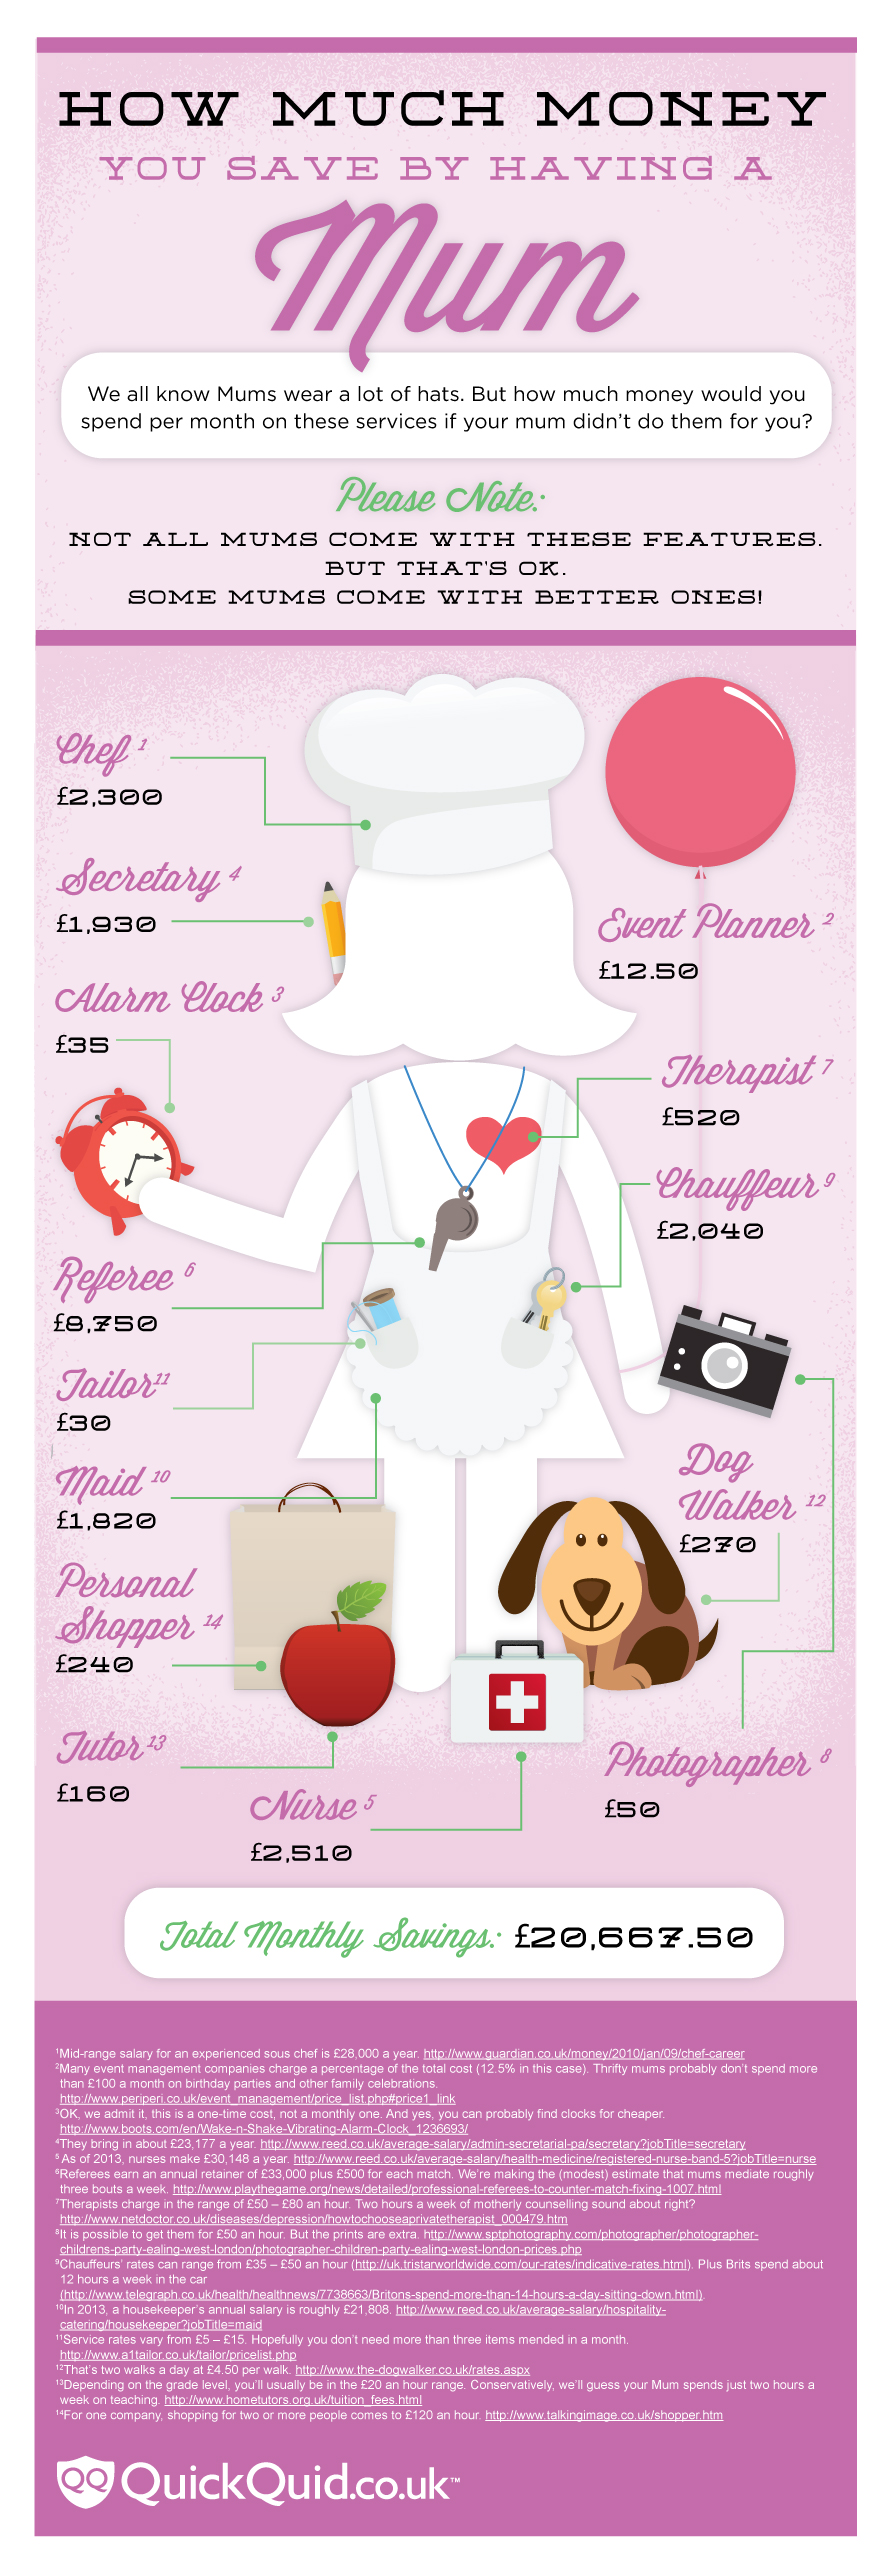 How Much Money You Save by Having a Mum (infographic)